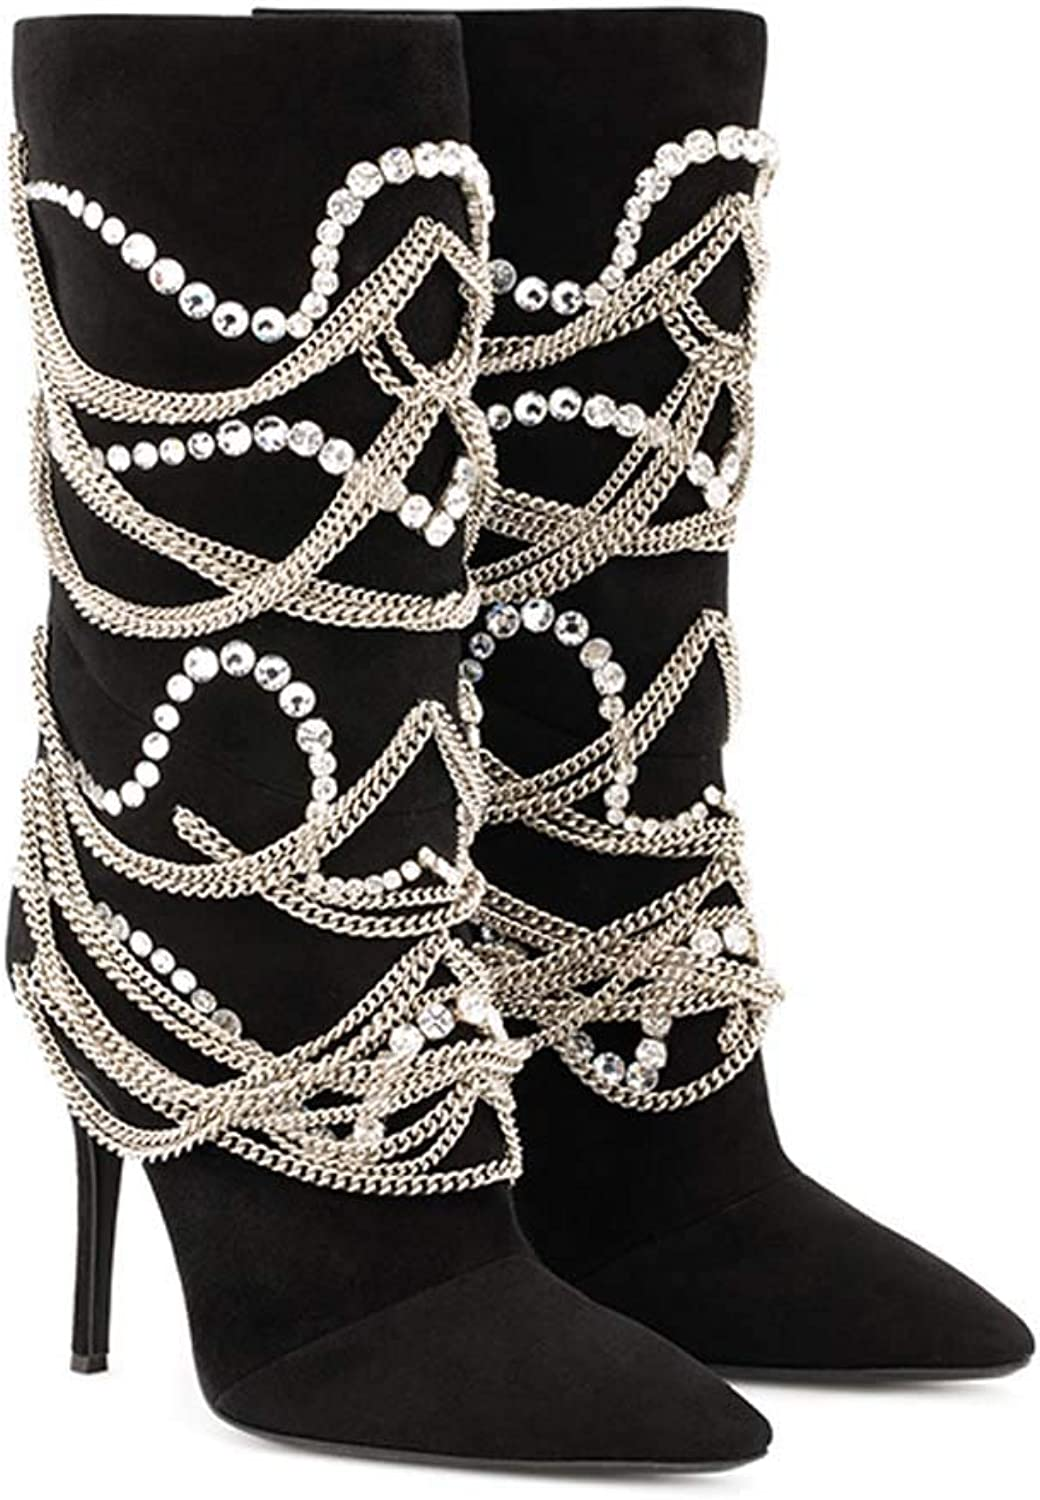 Women Pointed Boots 2018 Autumn Winter New Metal Chain High Heels Large Size Black